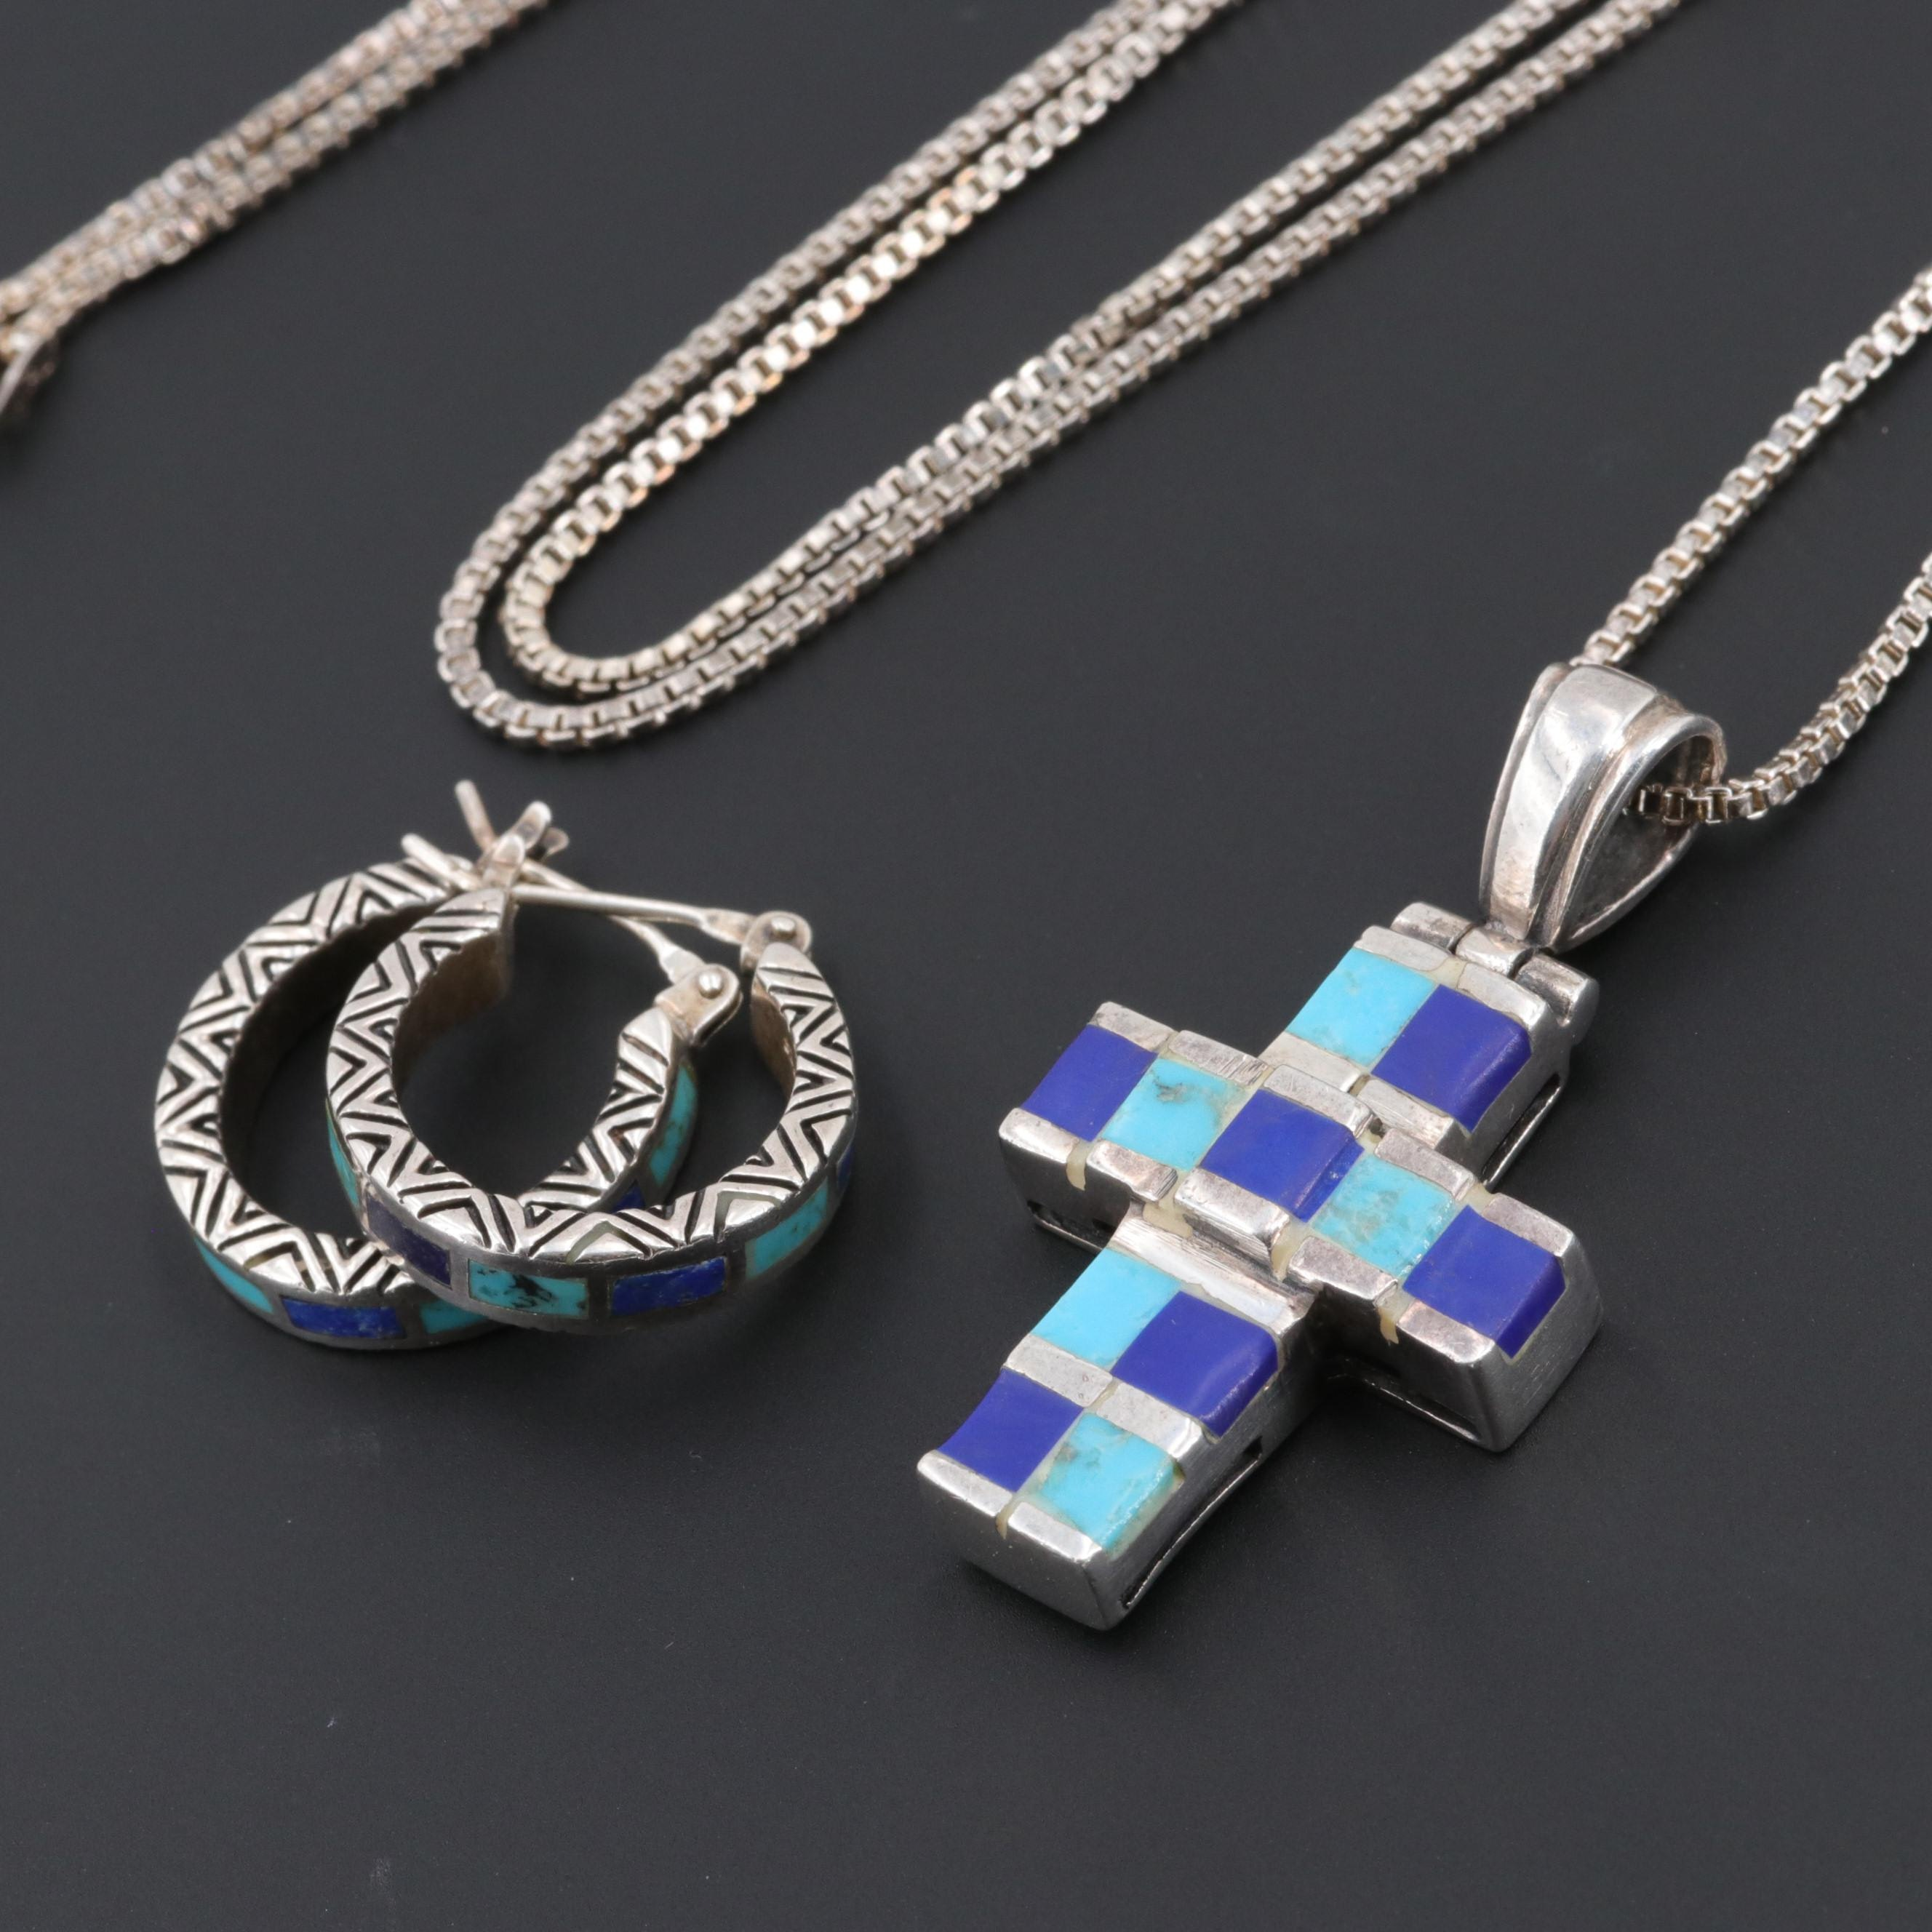 Sterling Silver Turquoise and Lapis Lazuli Cross Necklace and Hoop Earrings